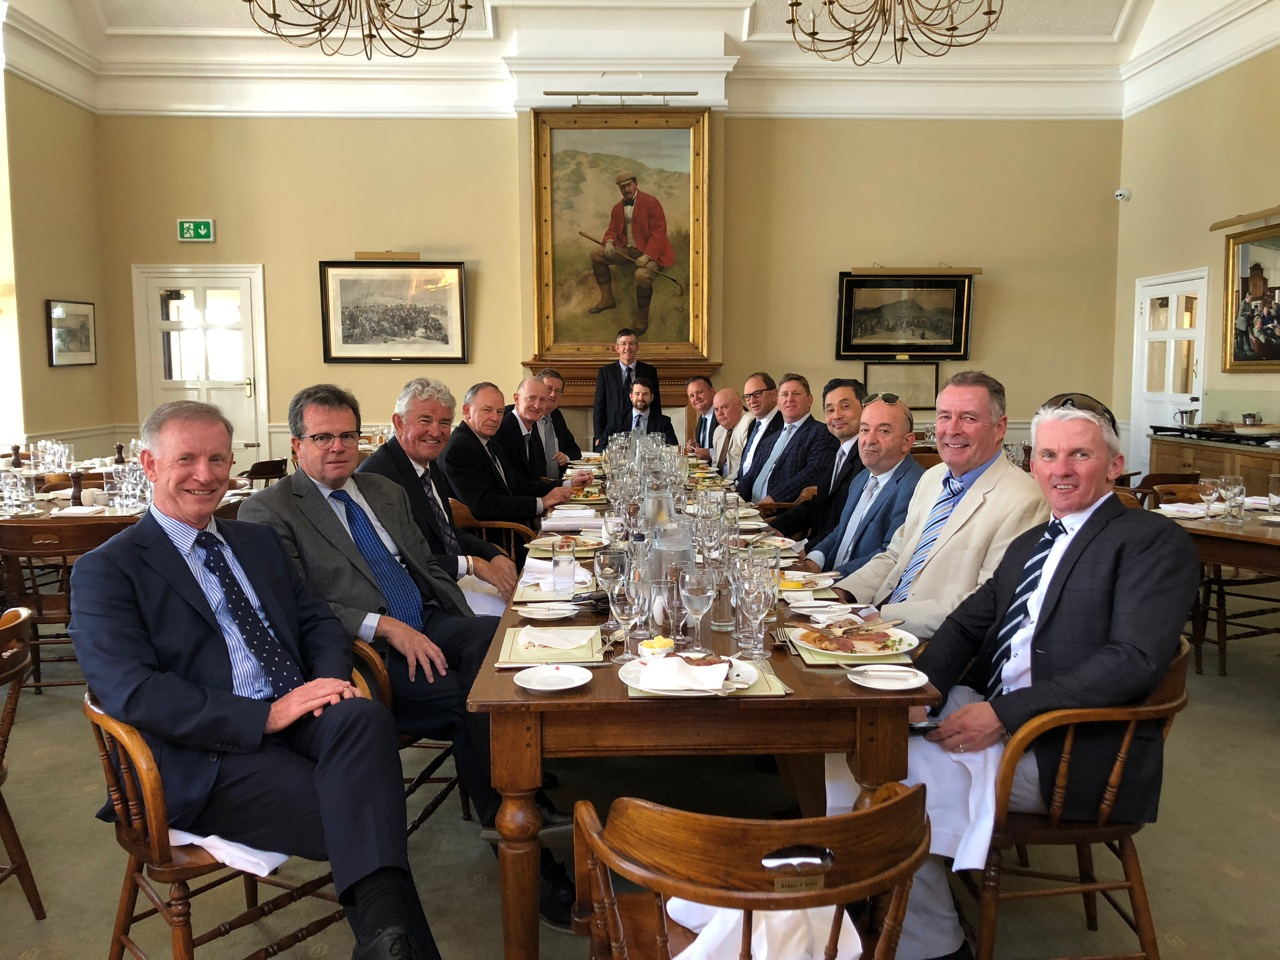 Lunch at Royal St Georges GC